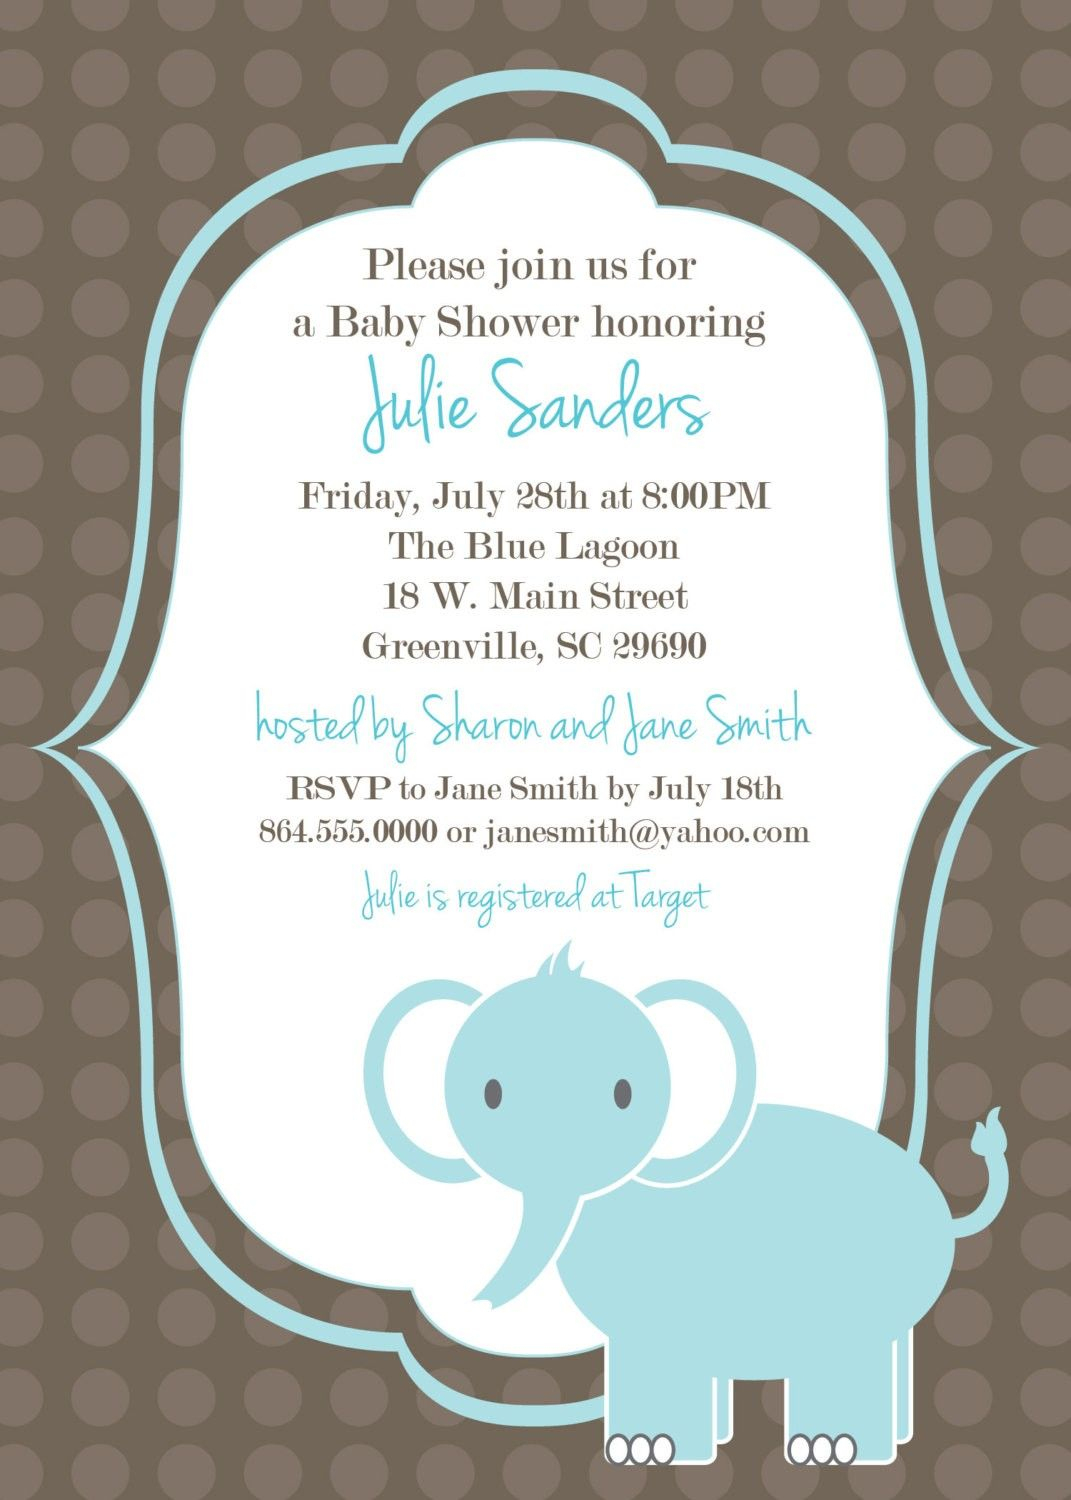 Download Free Template Got The Free Baby Shower Invitations - Free Printable Baby Shower Invitation Maker